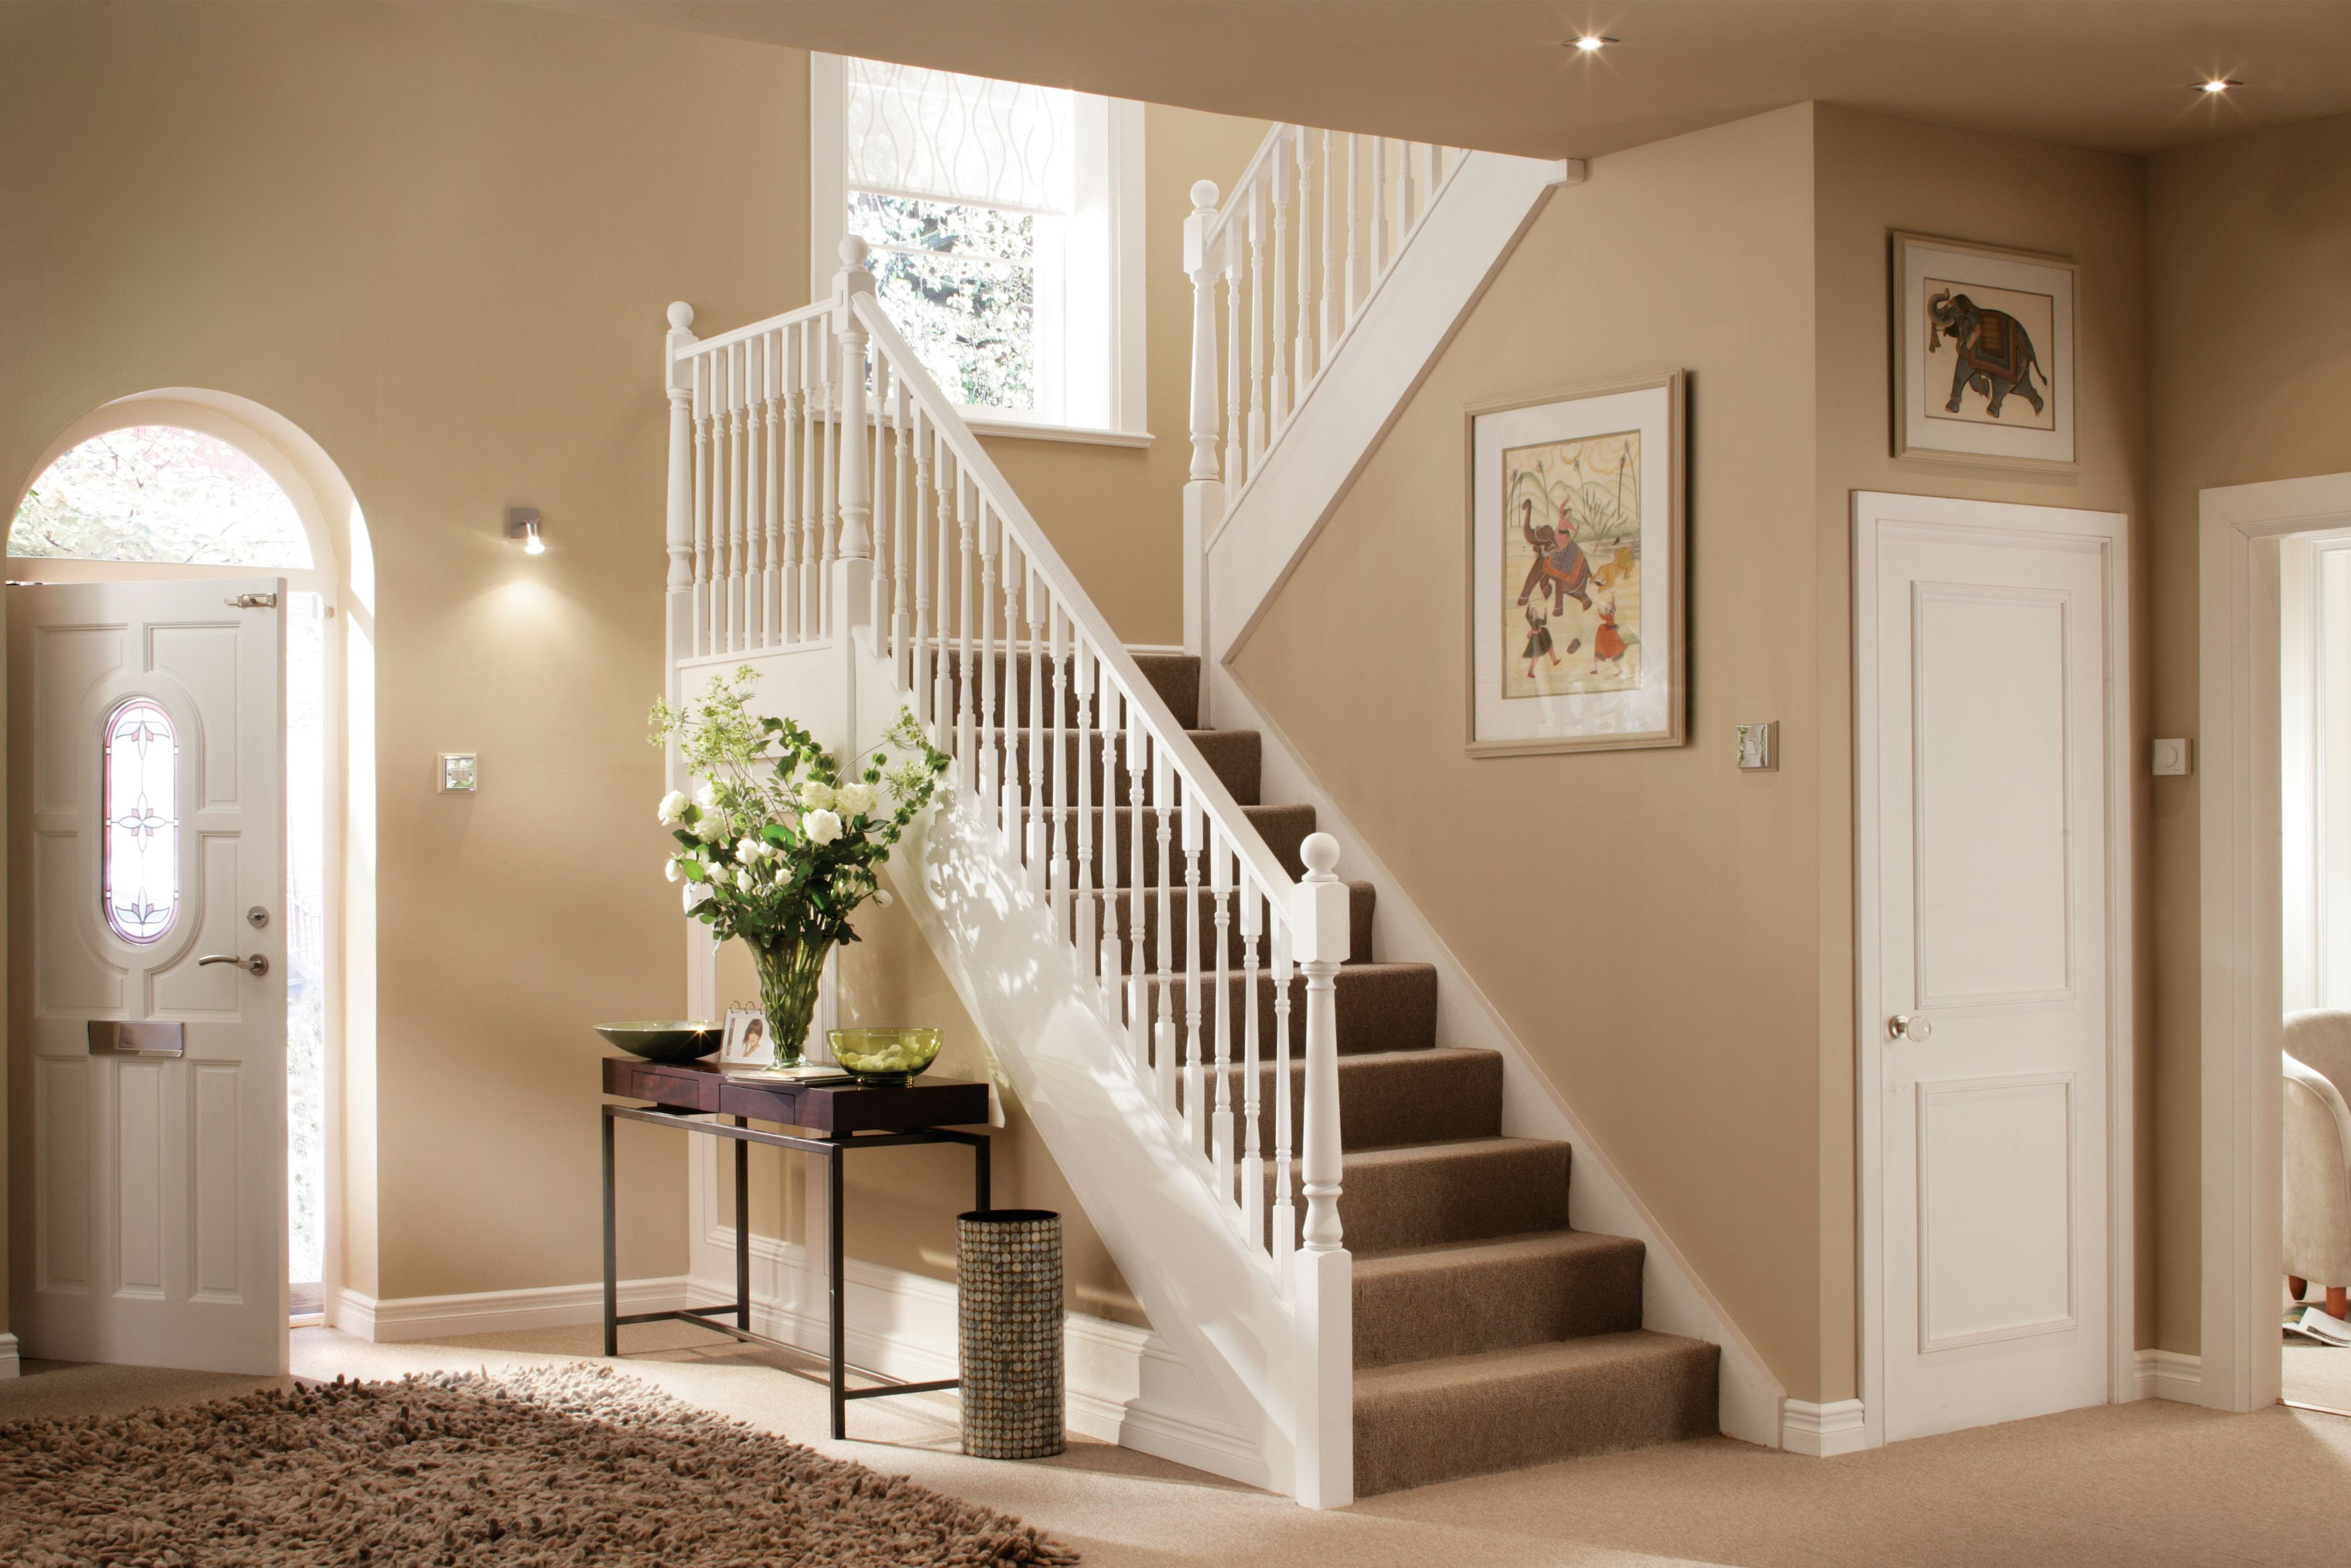 The Dream house Renovation Part II: Making an Entrance…